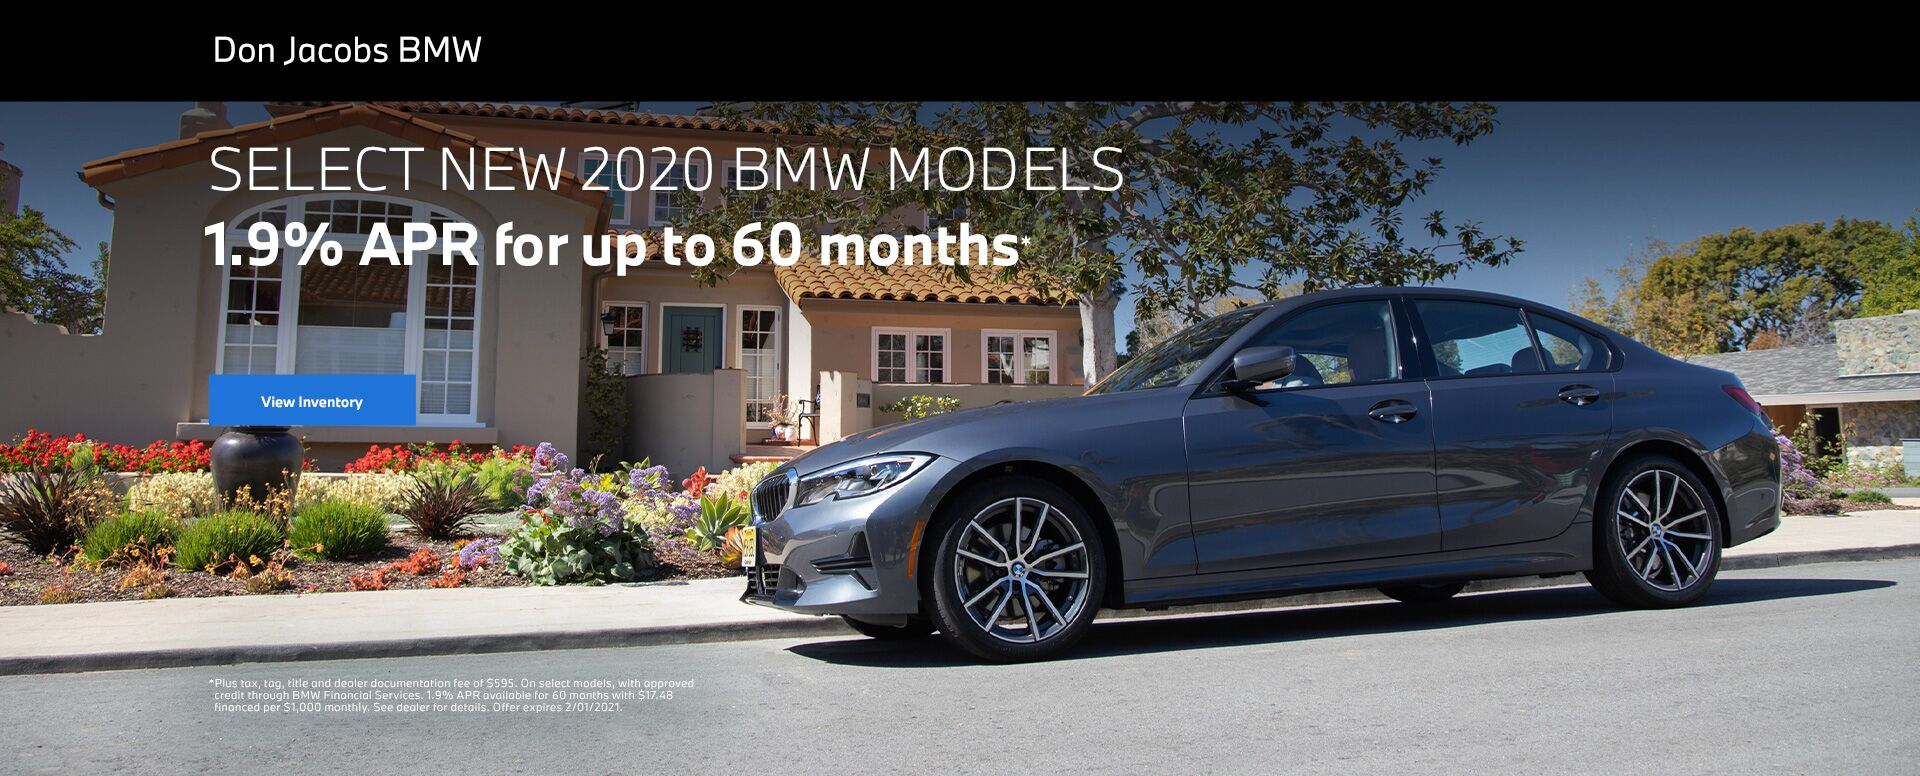 2020 Models Don Jacobs BMW